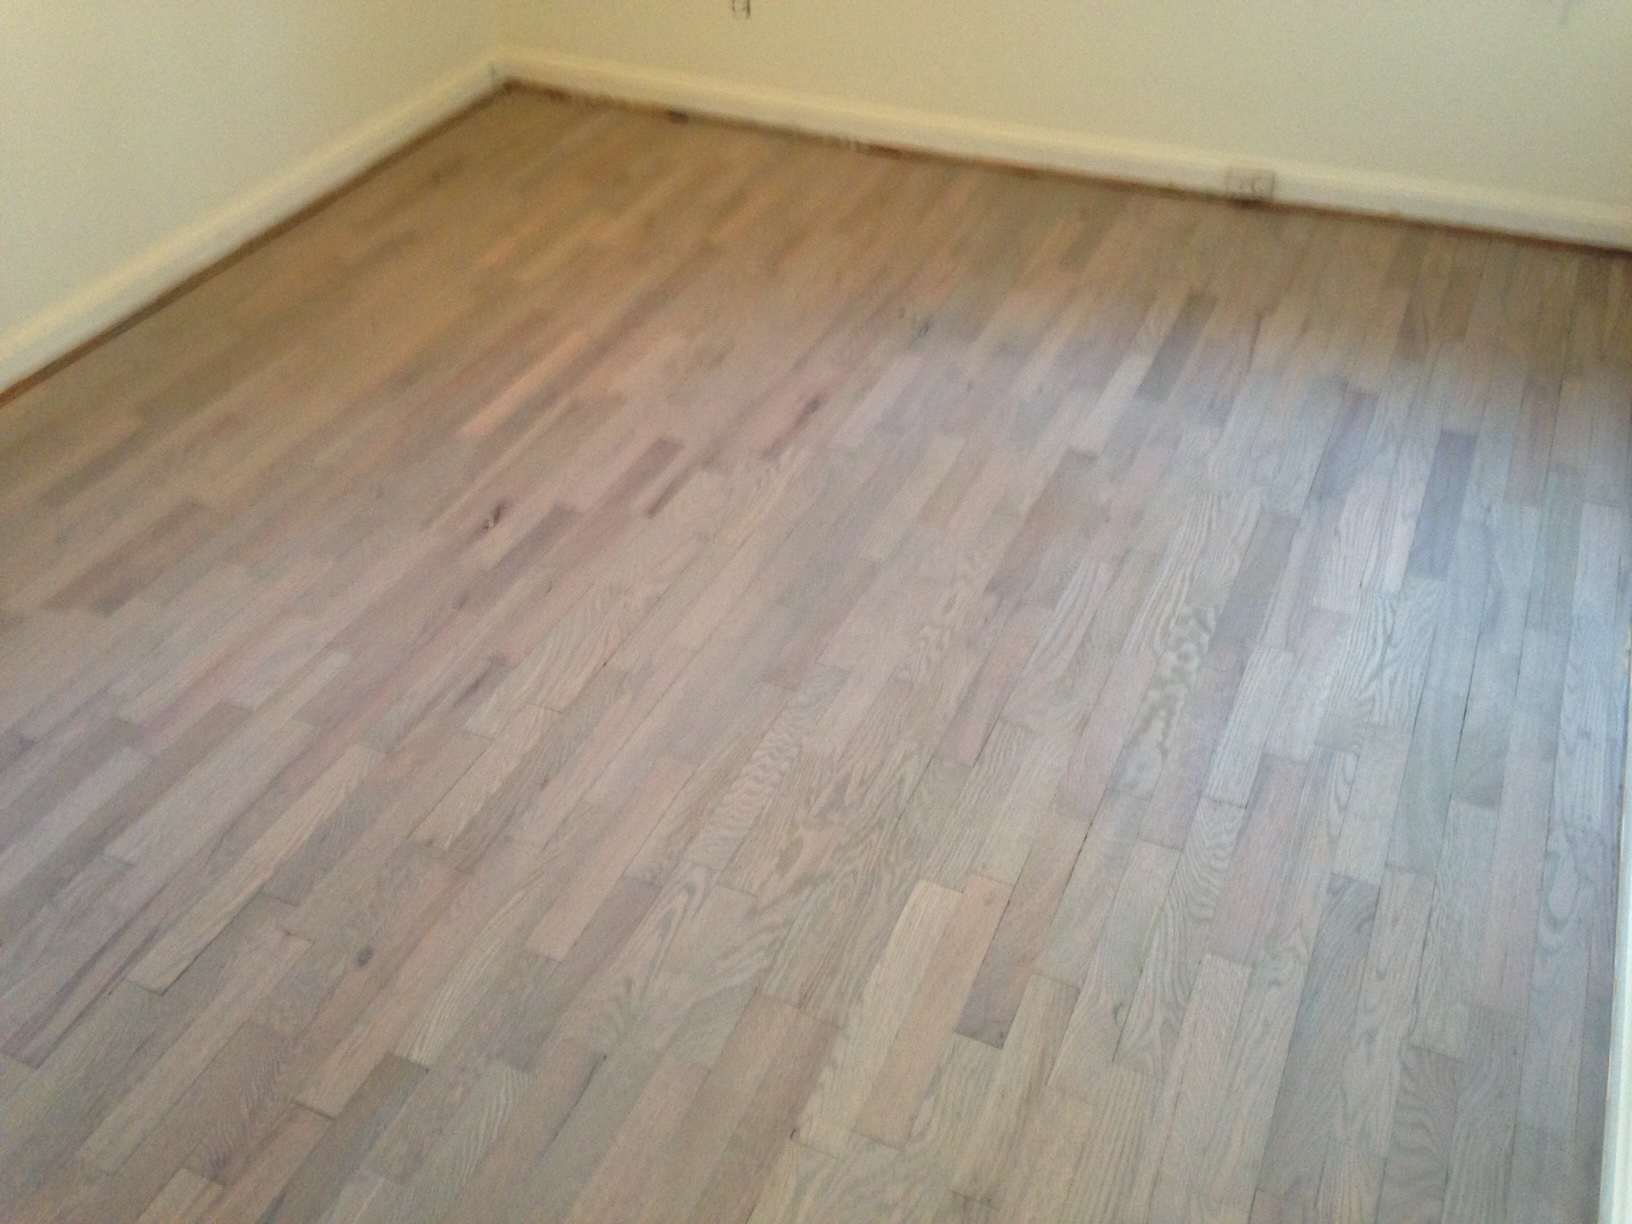 Refinishing wood floors for a beach house look dan 39 s for Staining hardwood floors